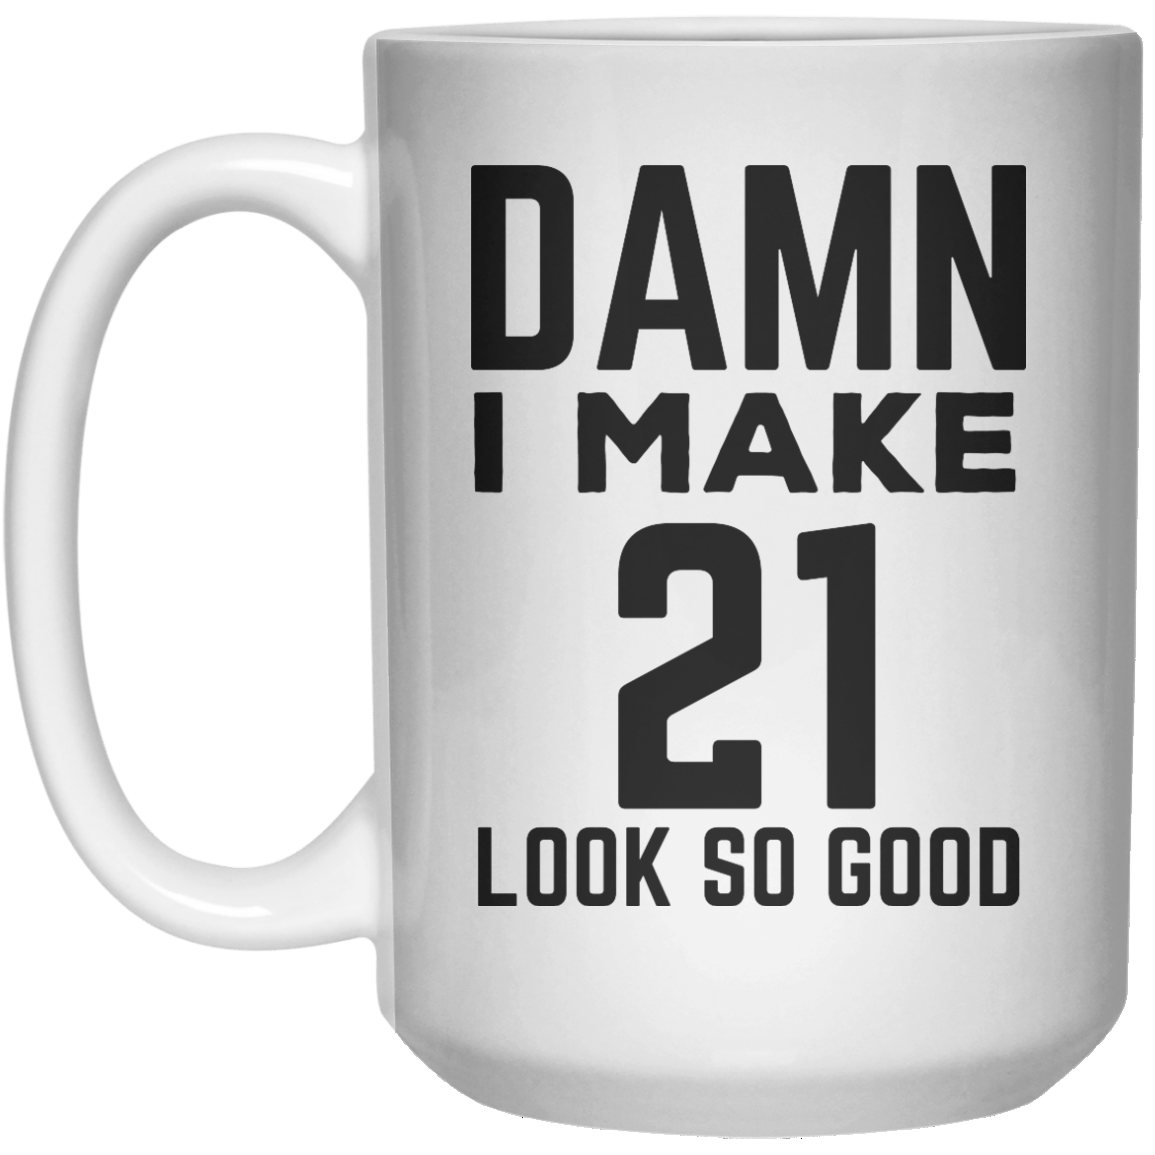 Damn I Make 21 Look So Good  Mug - 15oz - Shirtoopia